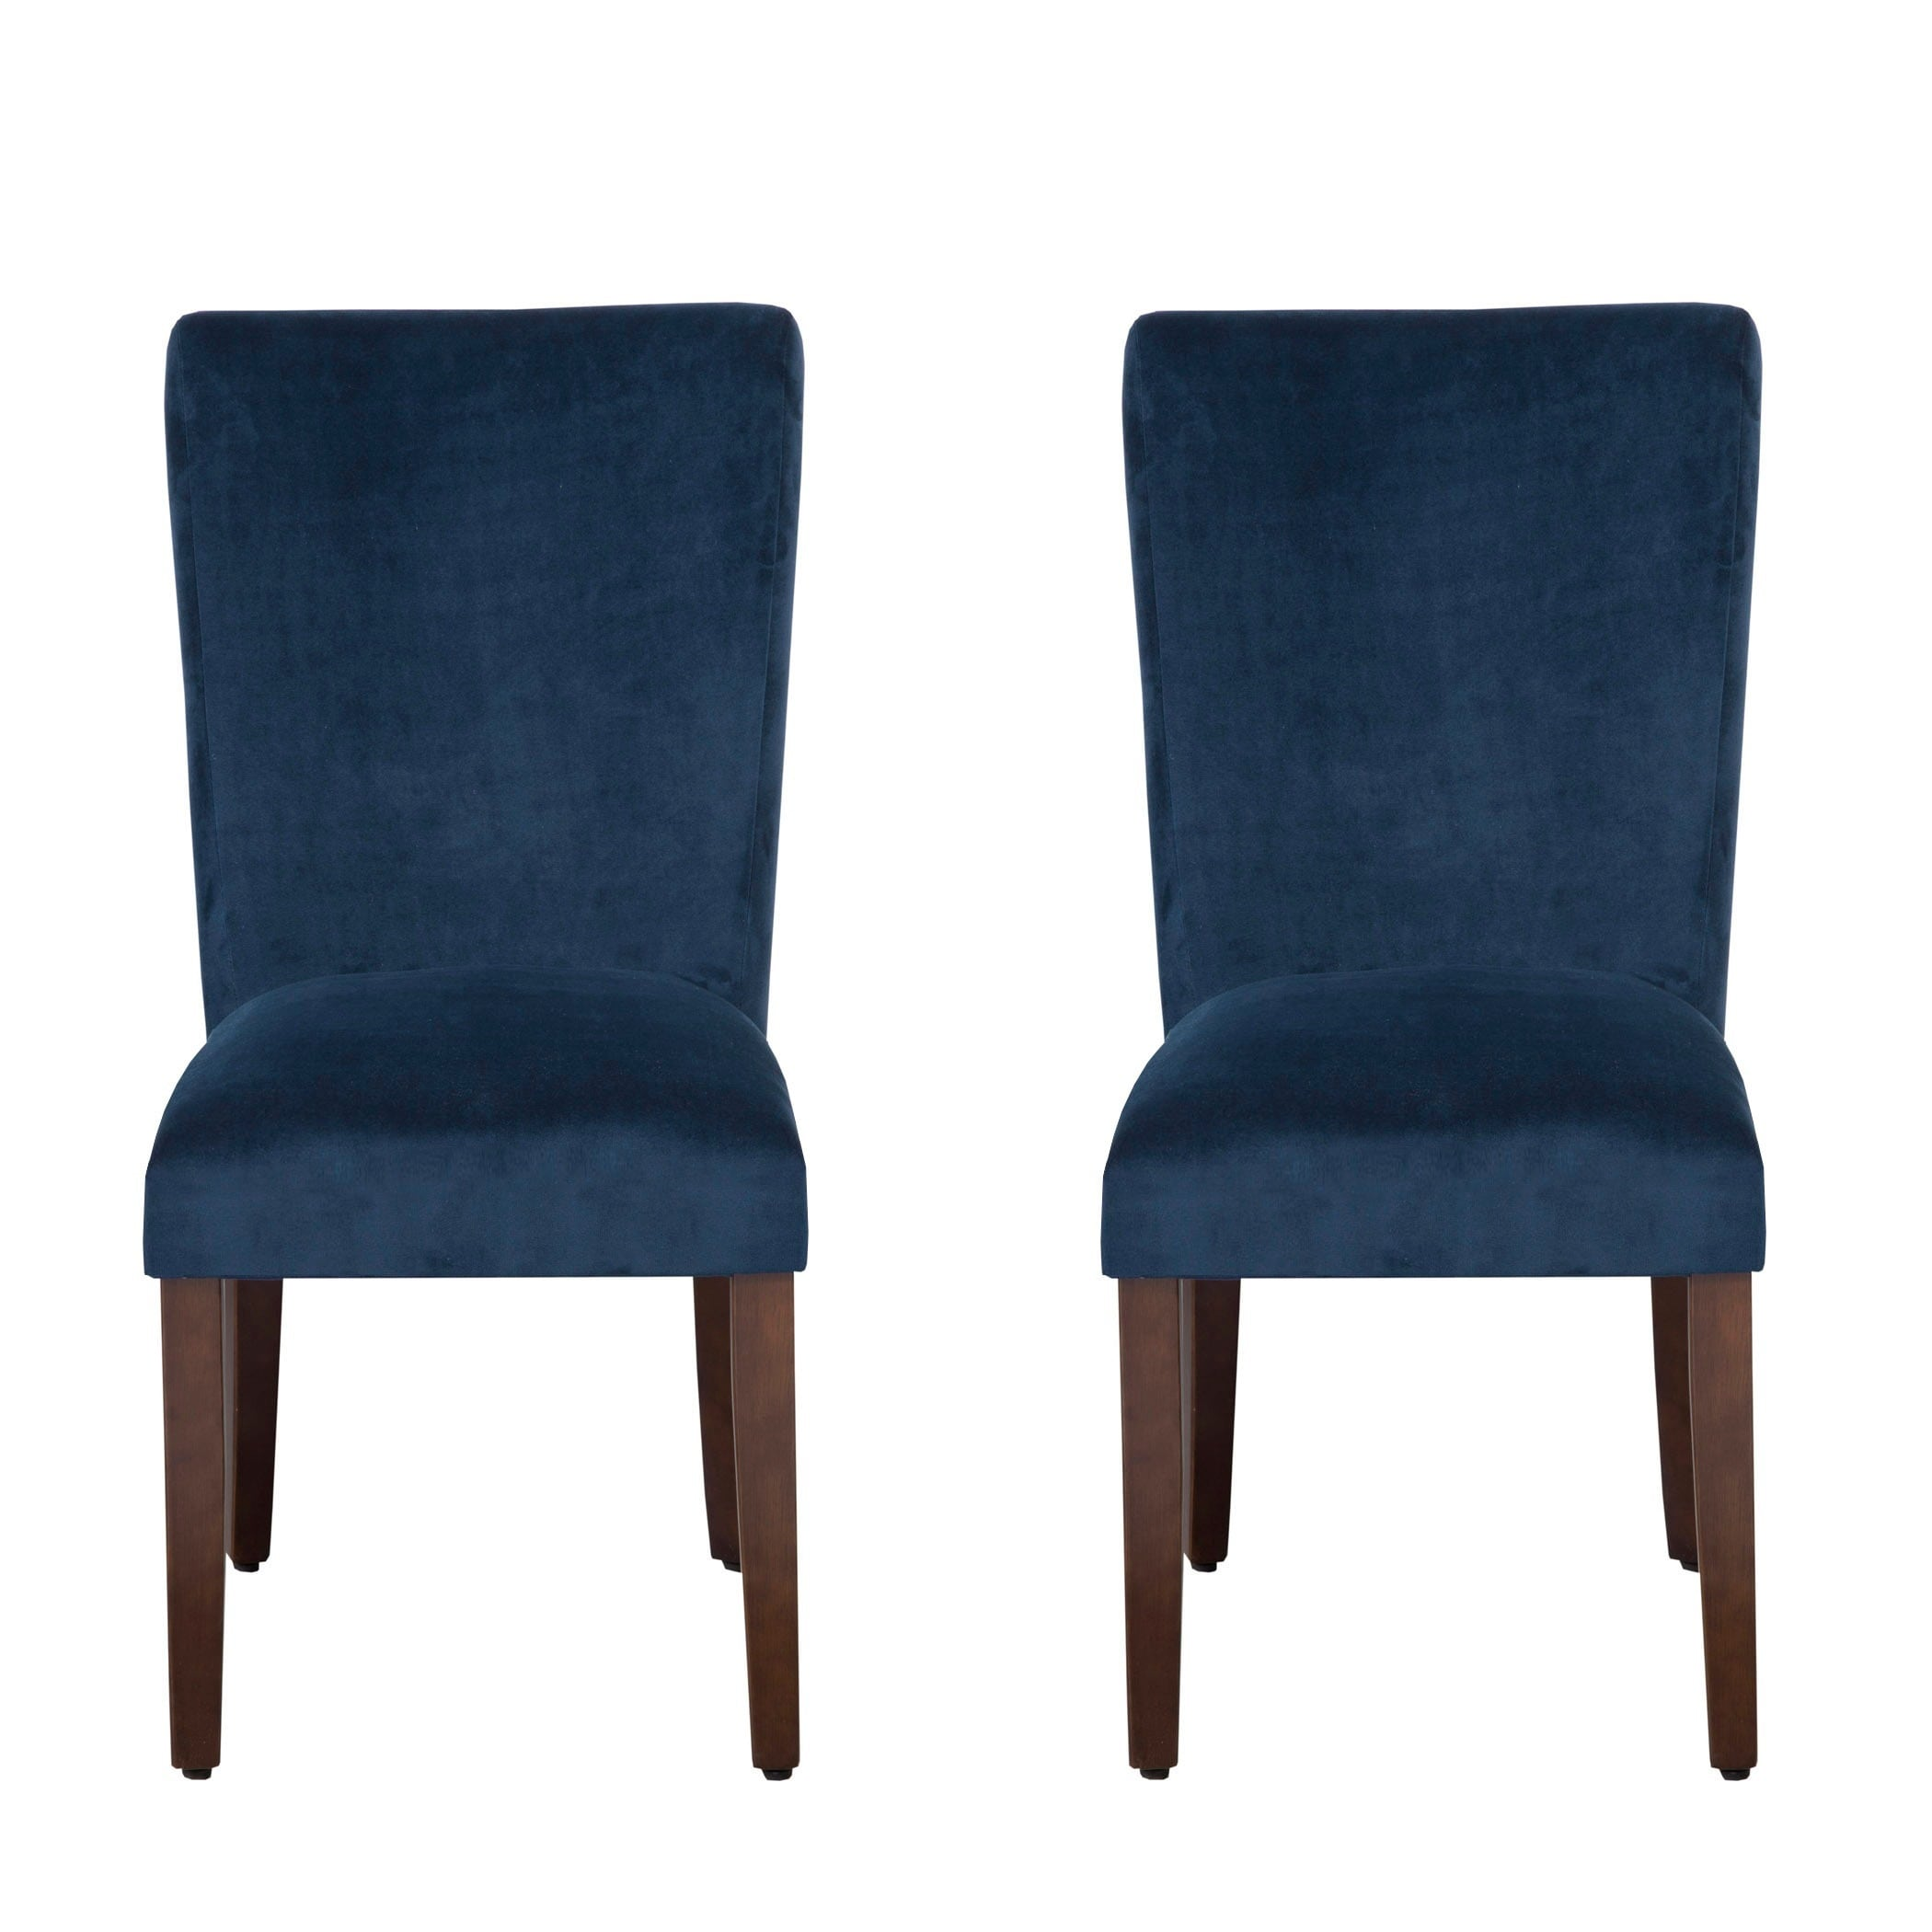 Homepop Ink Navy Plush Velvet Parson Chairs Set Of 2 Free Shipping Today 17411497